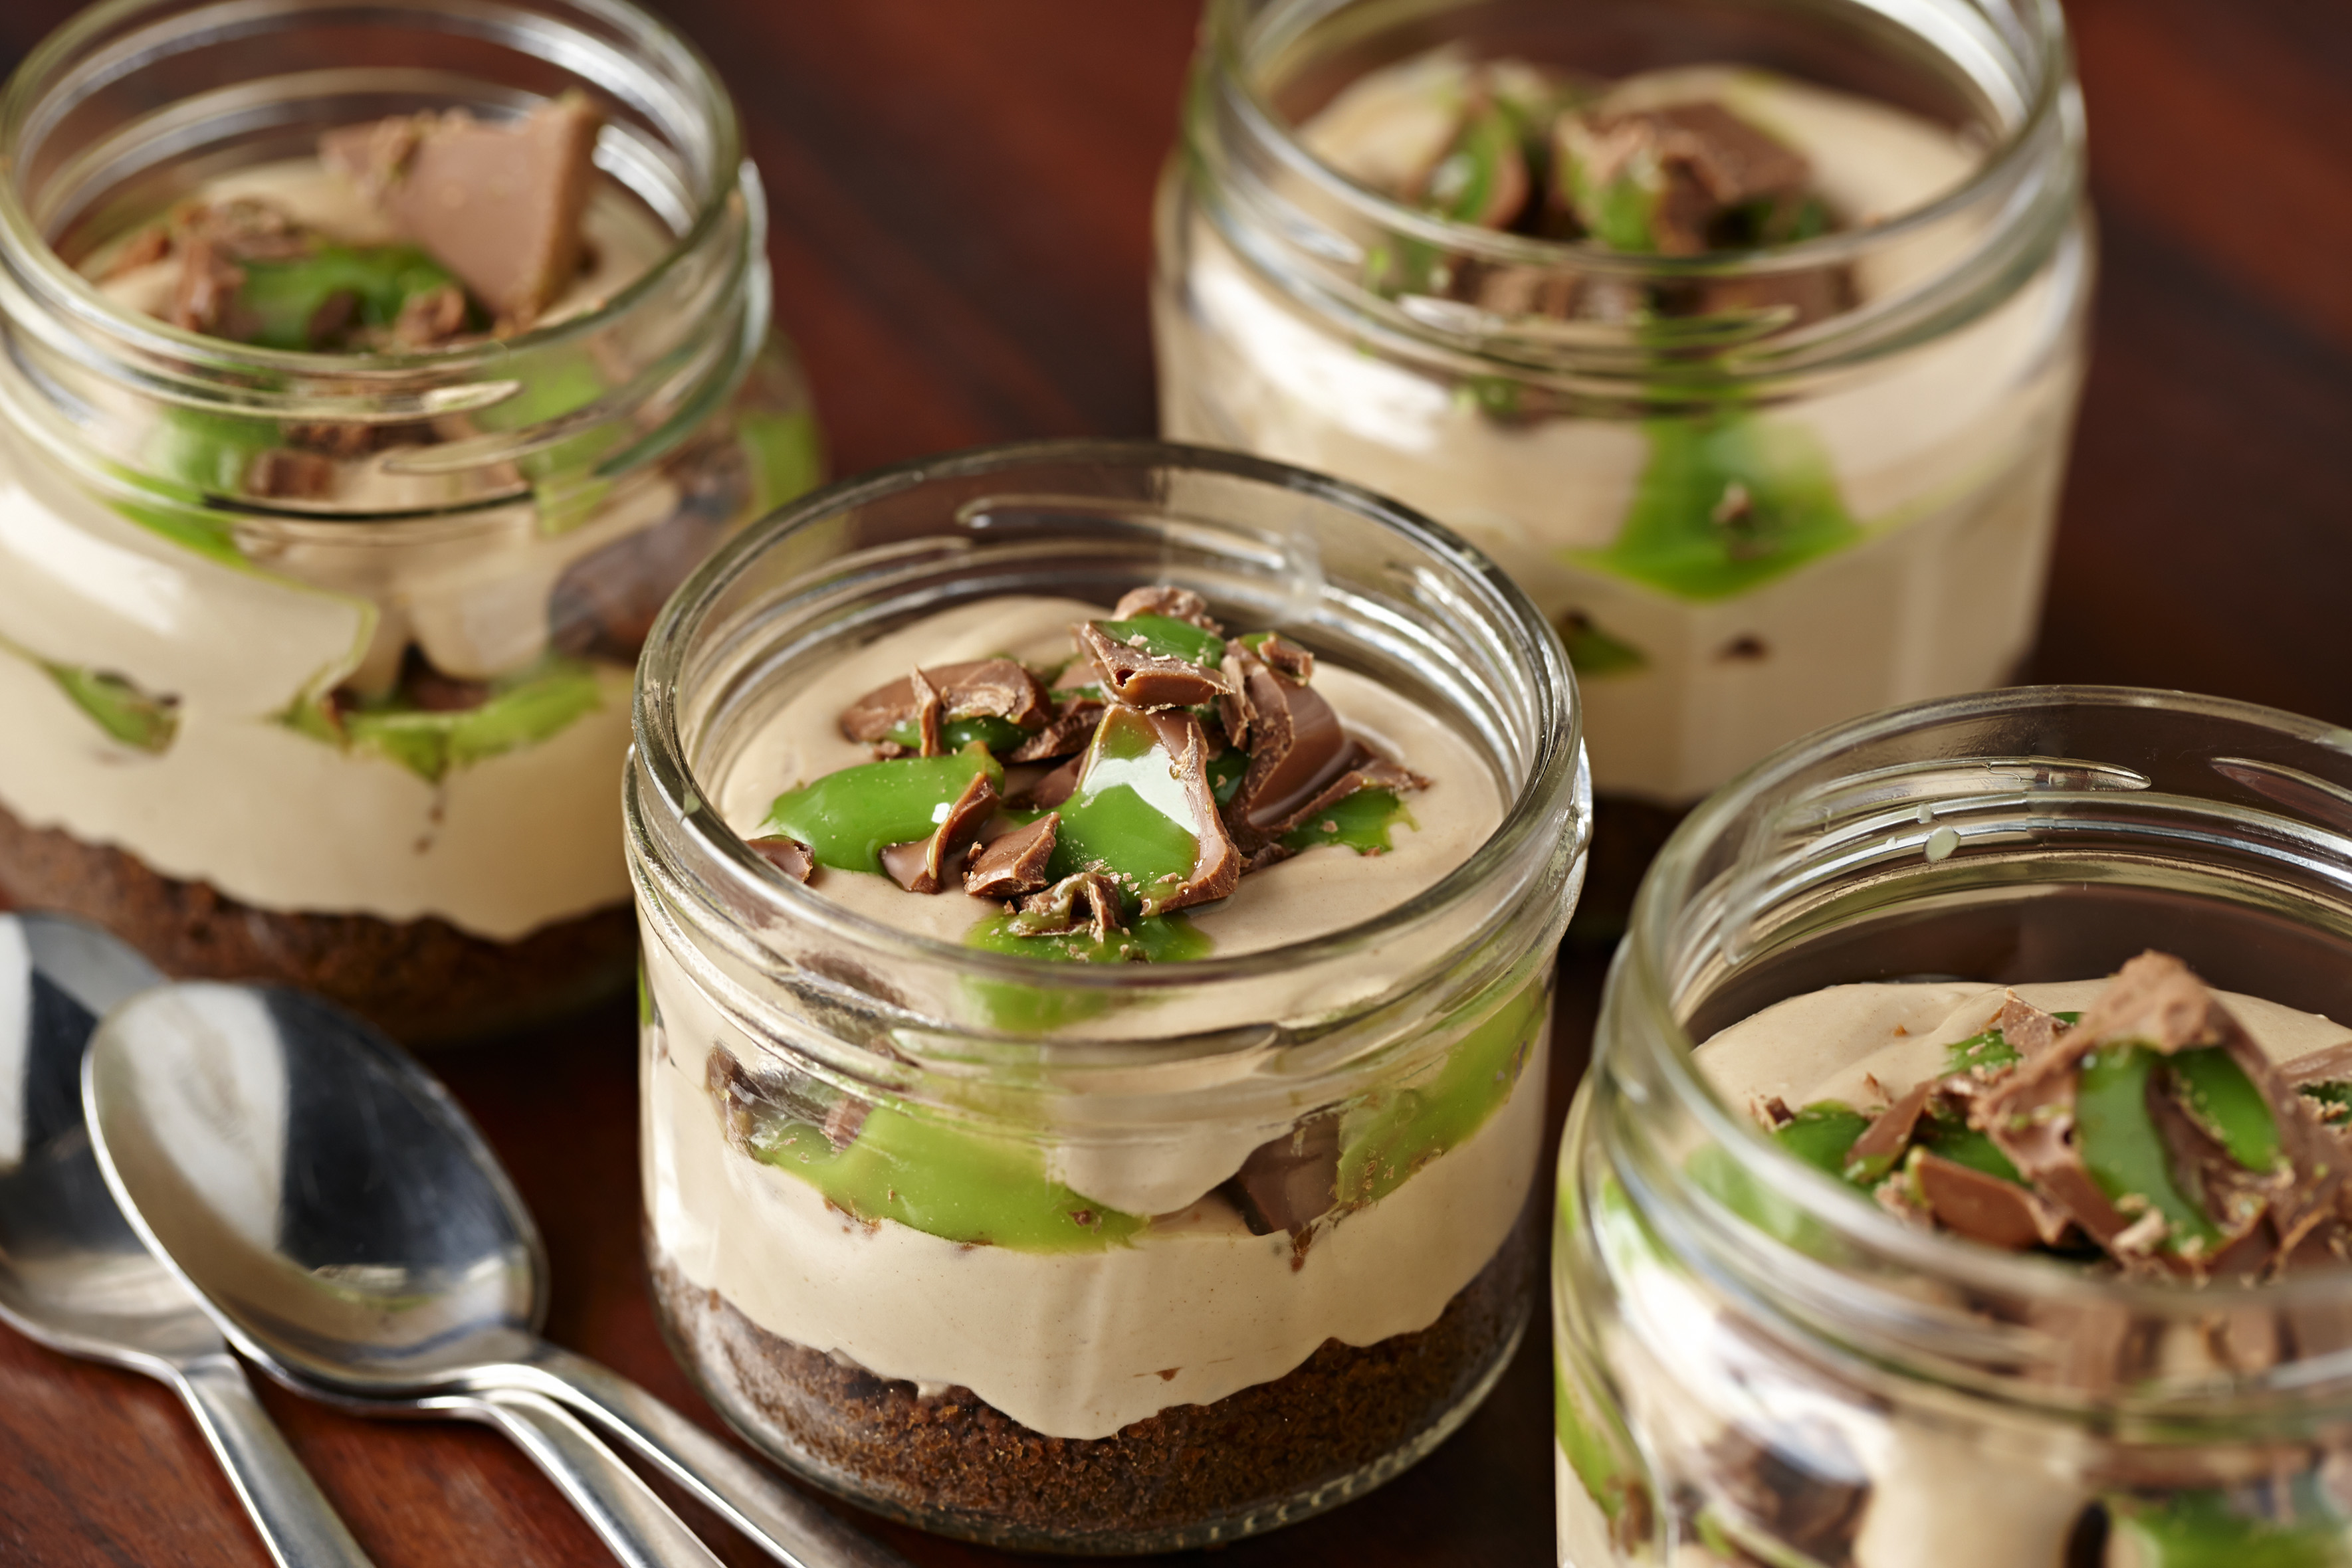 Peppermint Cheesecake in a glass recipe idea from Cadbury Kitchen